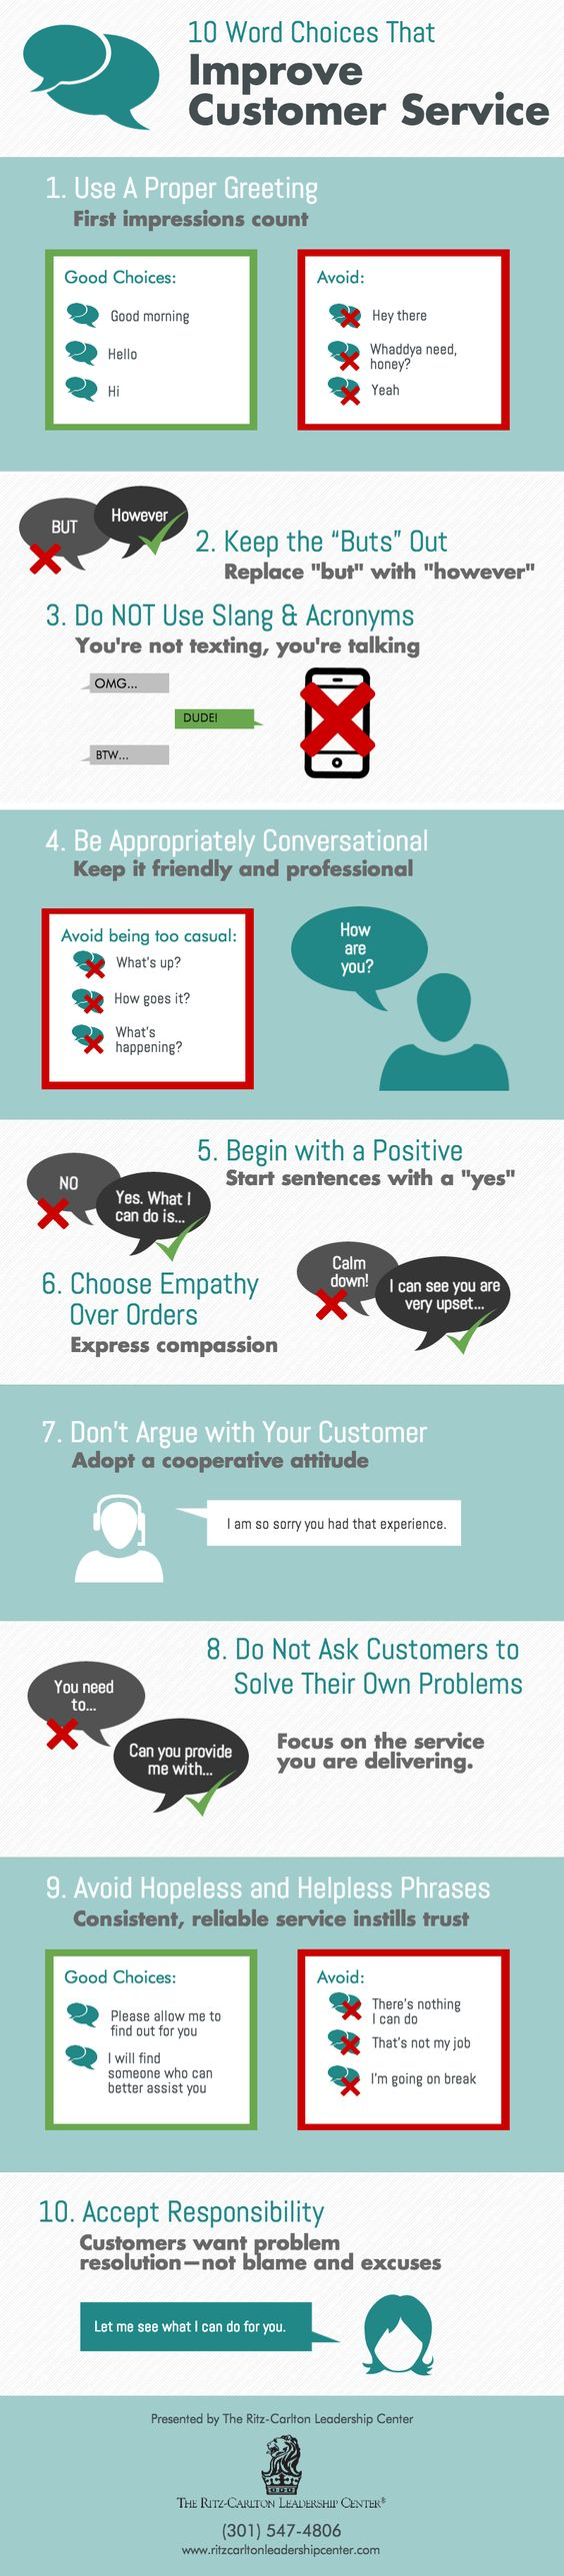 This customer service infographic from The Ritz-Carlton Leadership Center offers 10 word choices that will help you improve customer service skills.